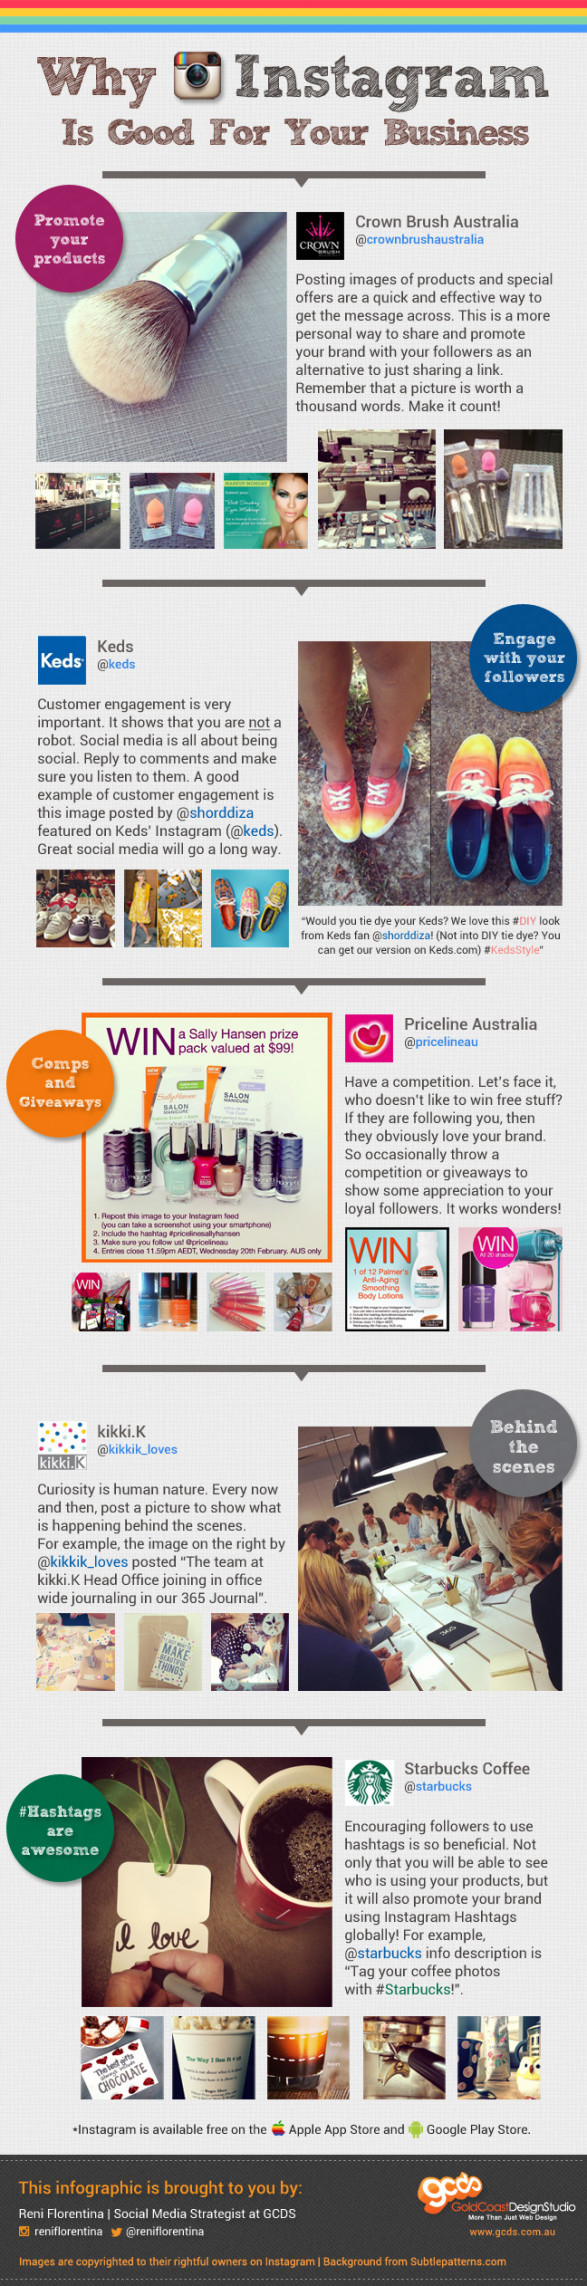 Why Instagram is good for your business?